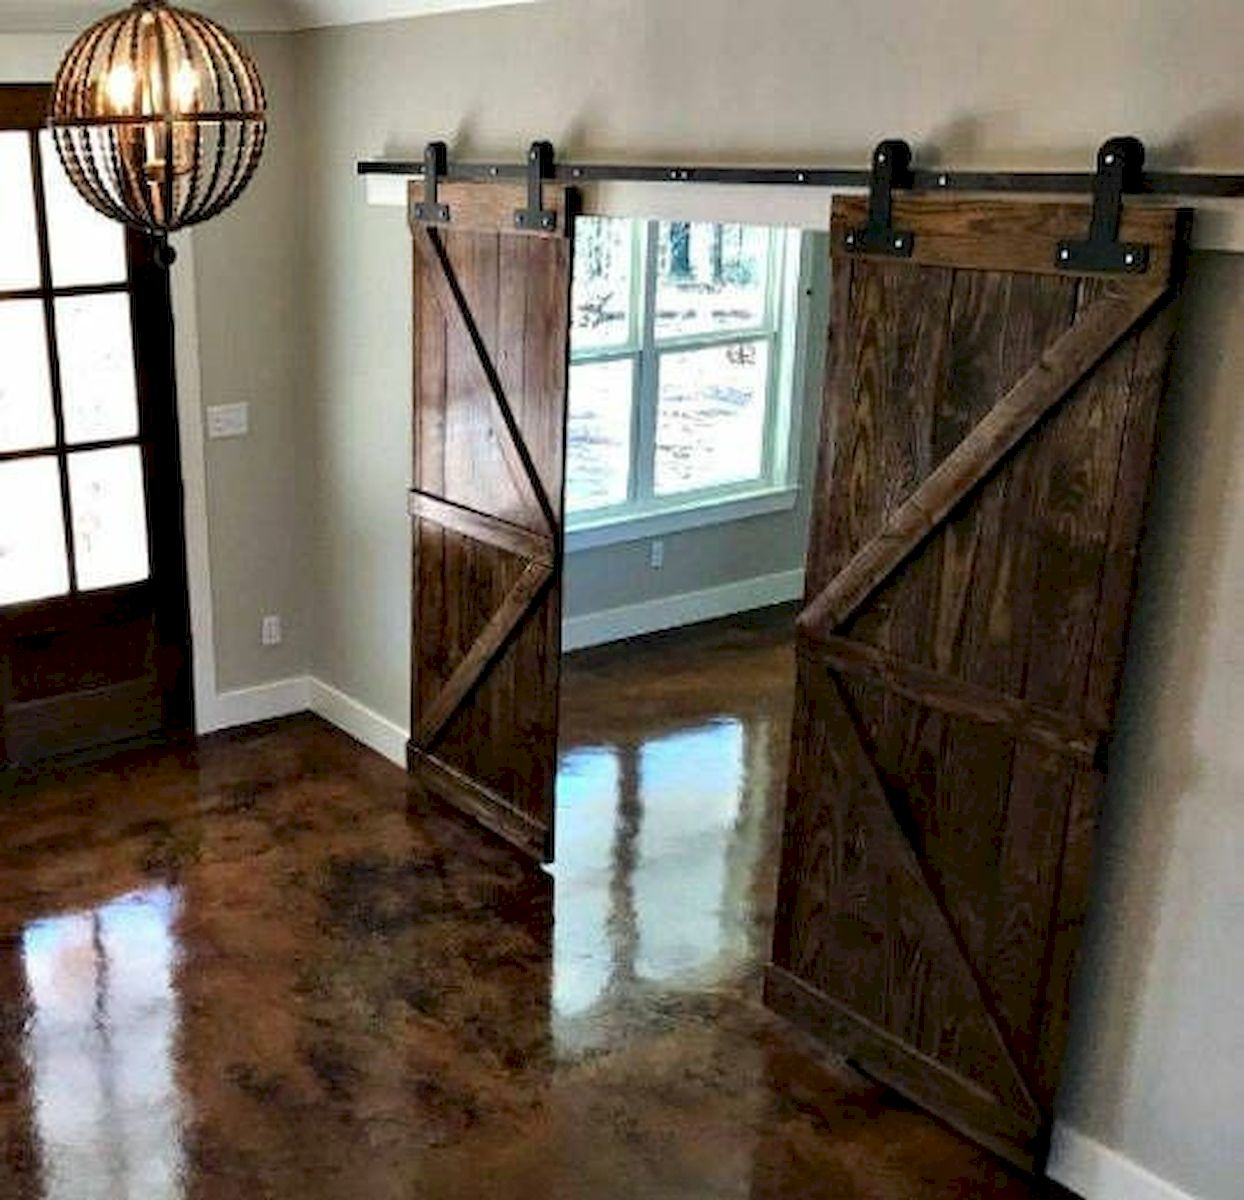 70 Rustic Home Decor Ideas for Doors and Windows (2)